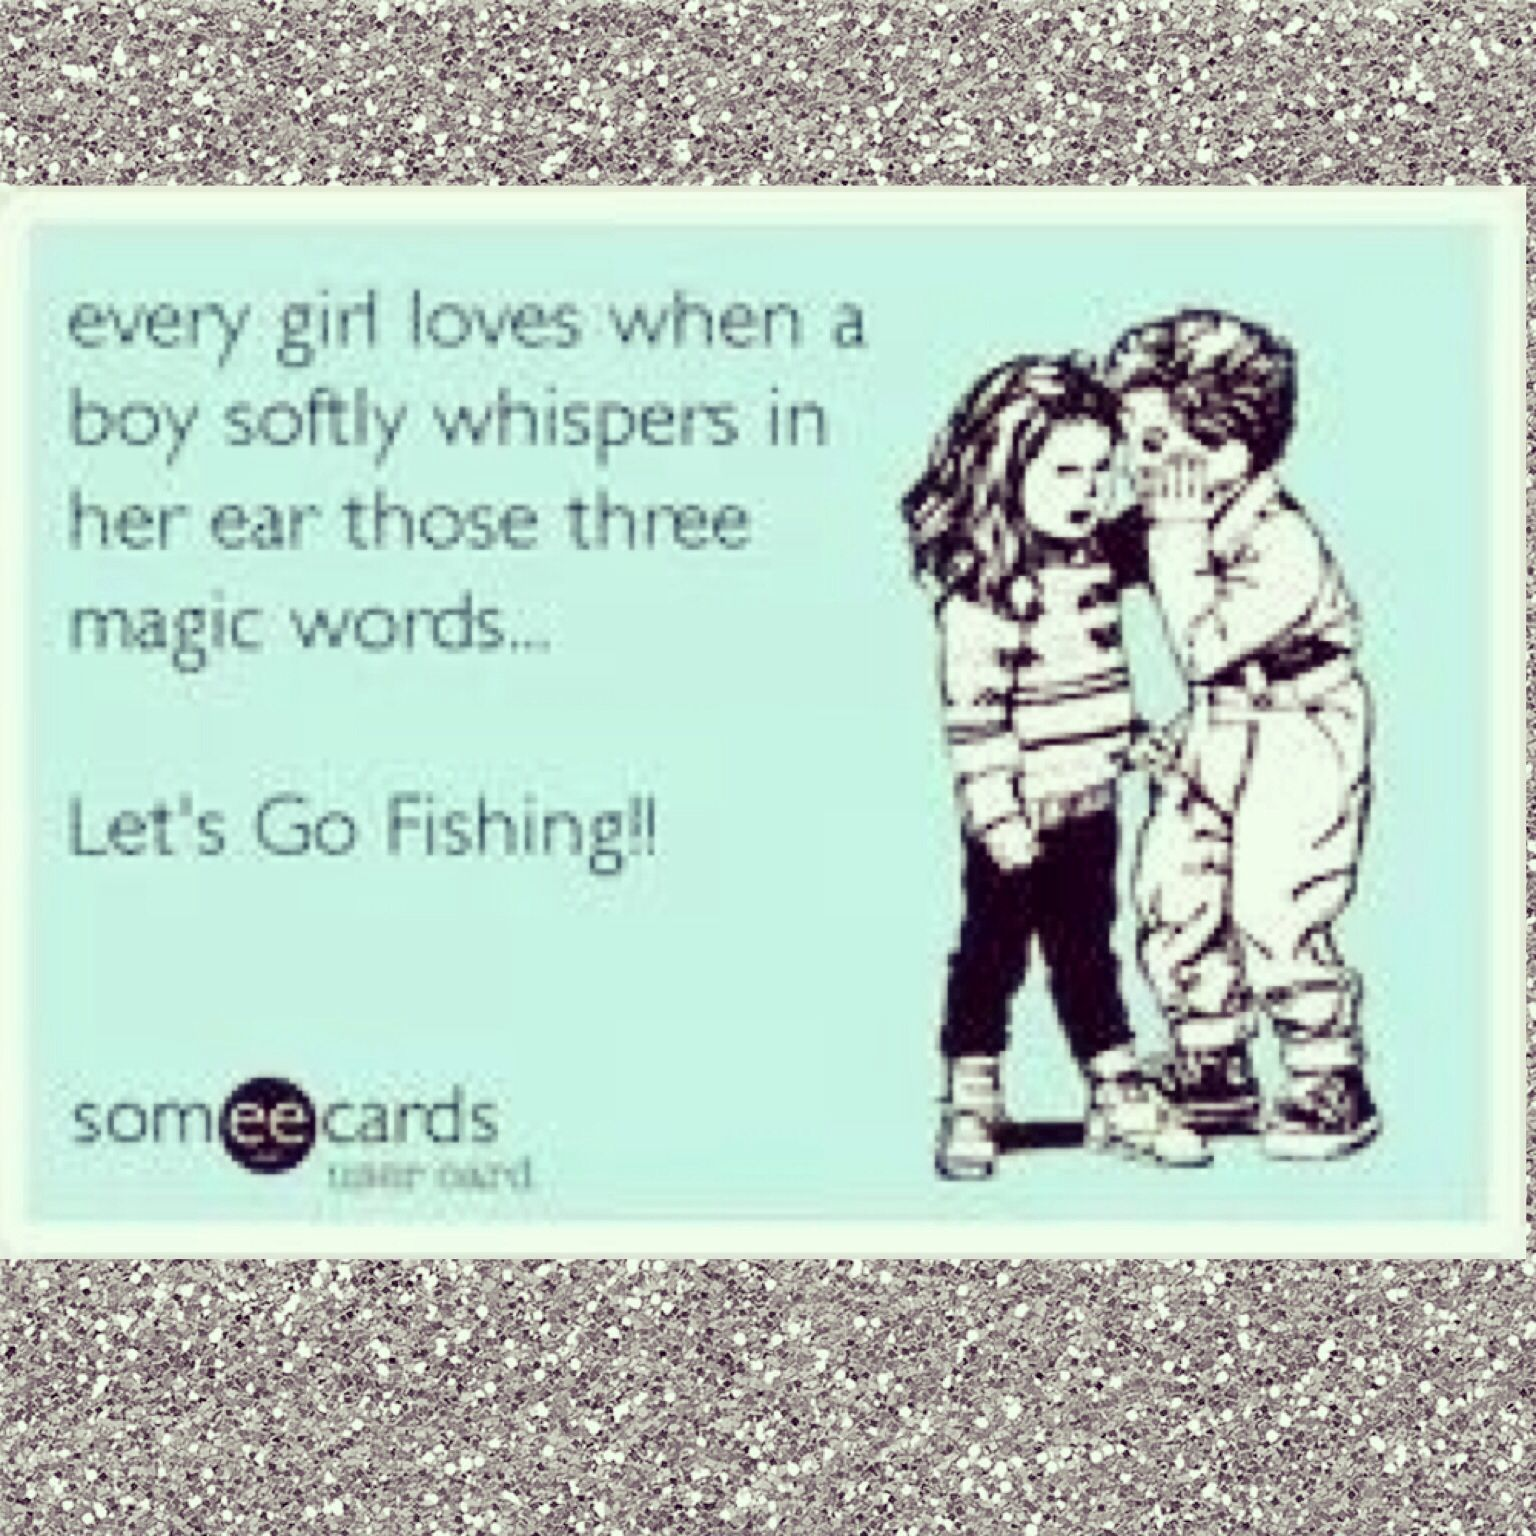 lets go fishing instead of just a wishin